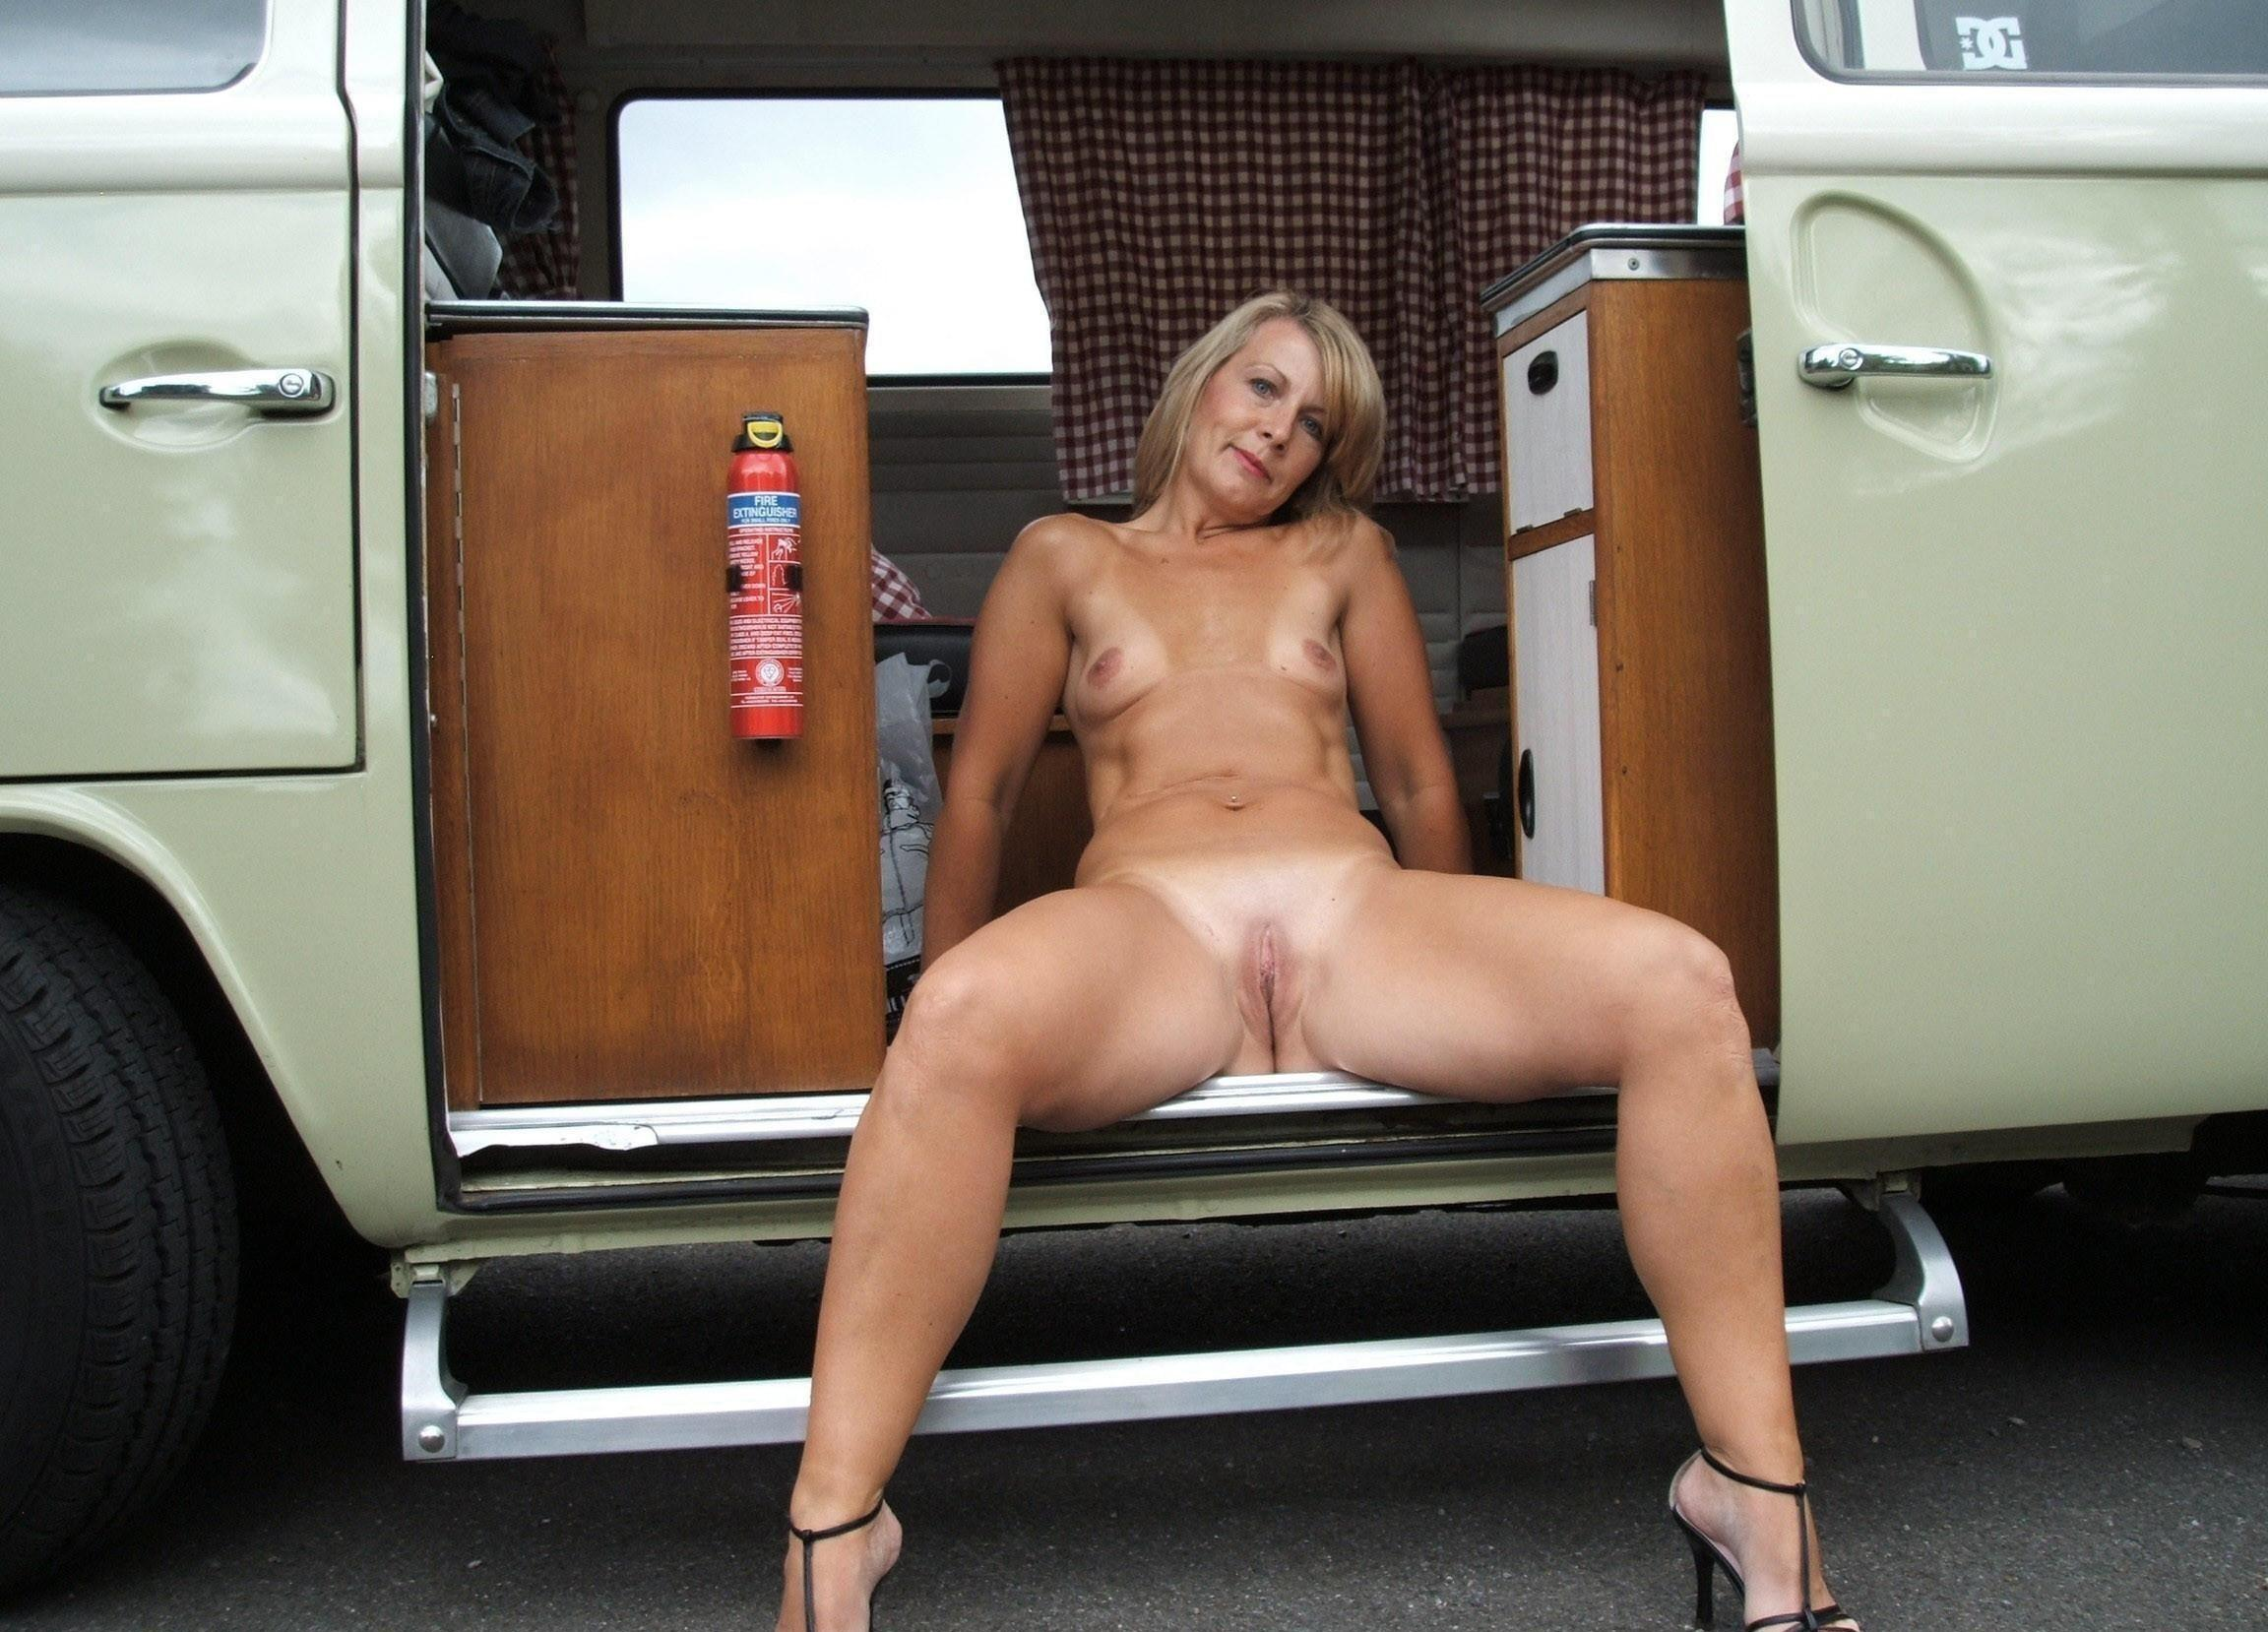 Cristina a 69 old horny HOMEMADE GRANNY having fun during her camping hollidays